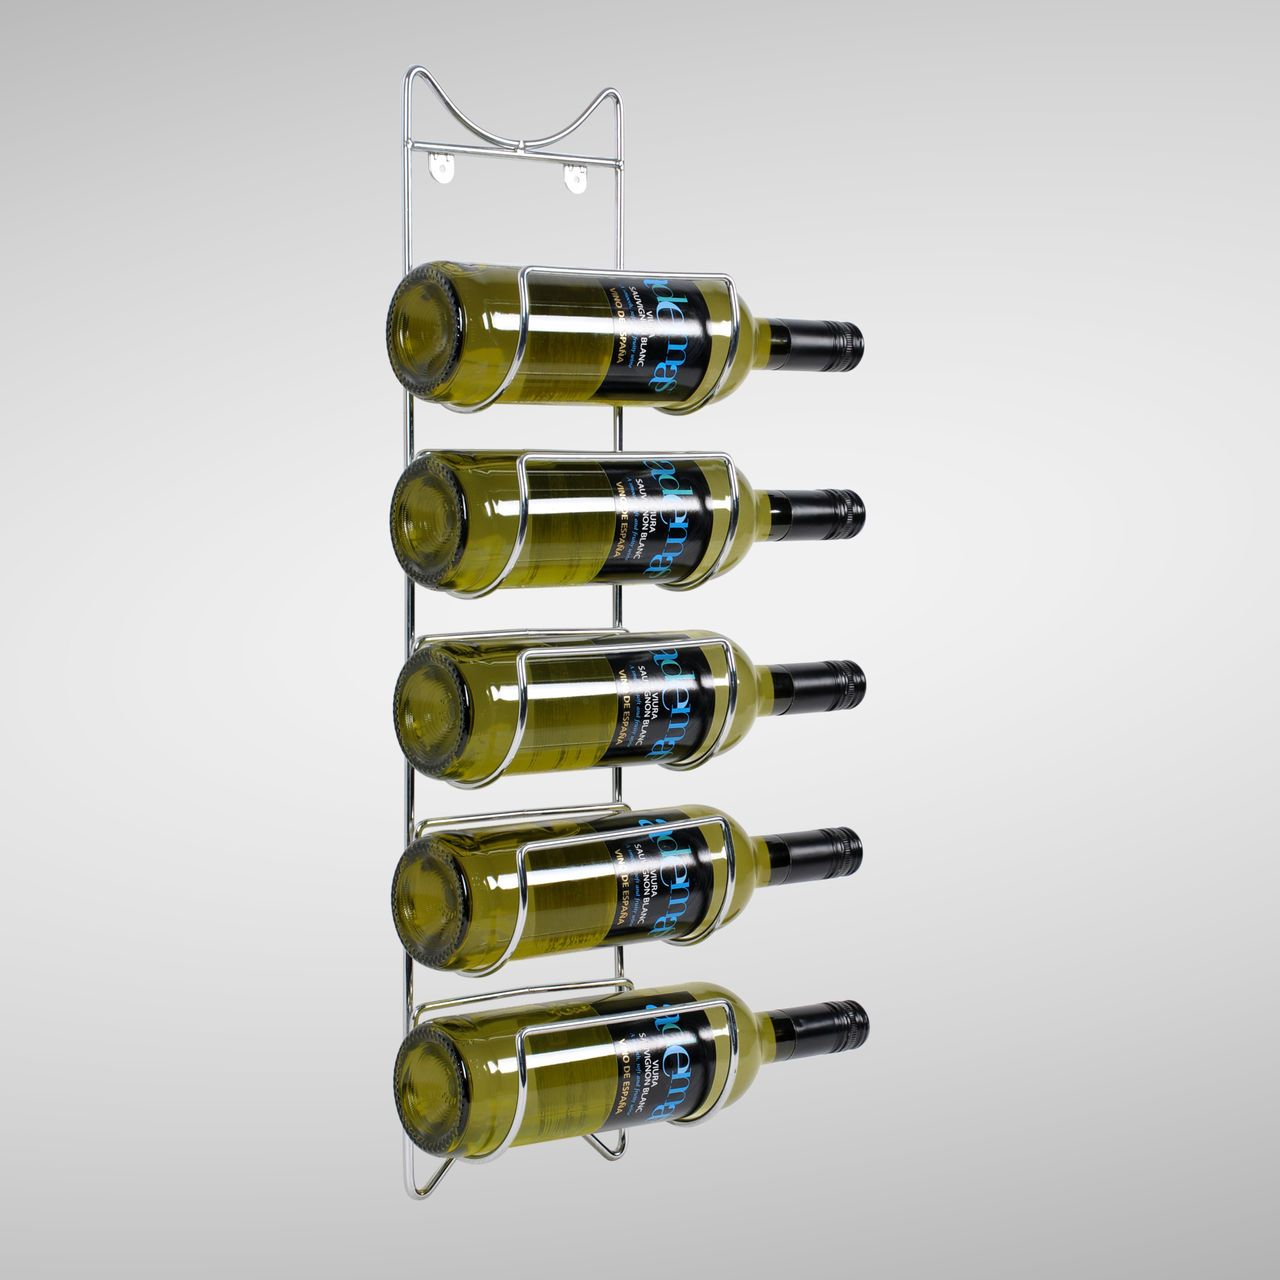 Wandweinregal Wand Weinregal Wall Design Weinregale Wine Rack Wall Wine